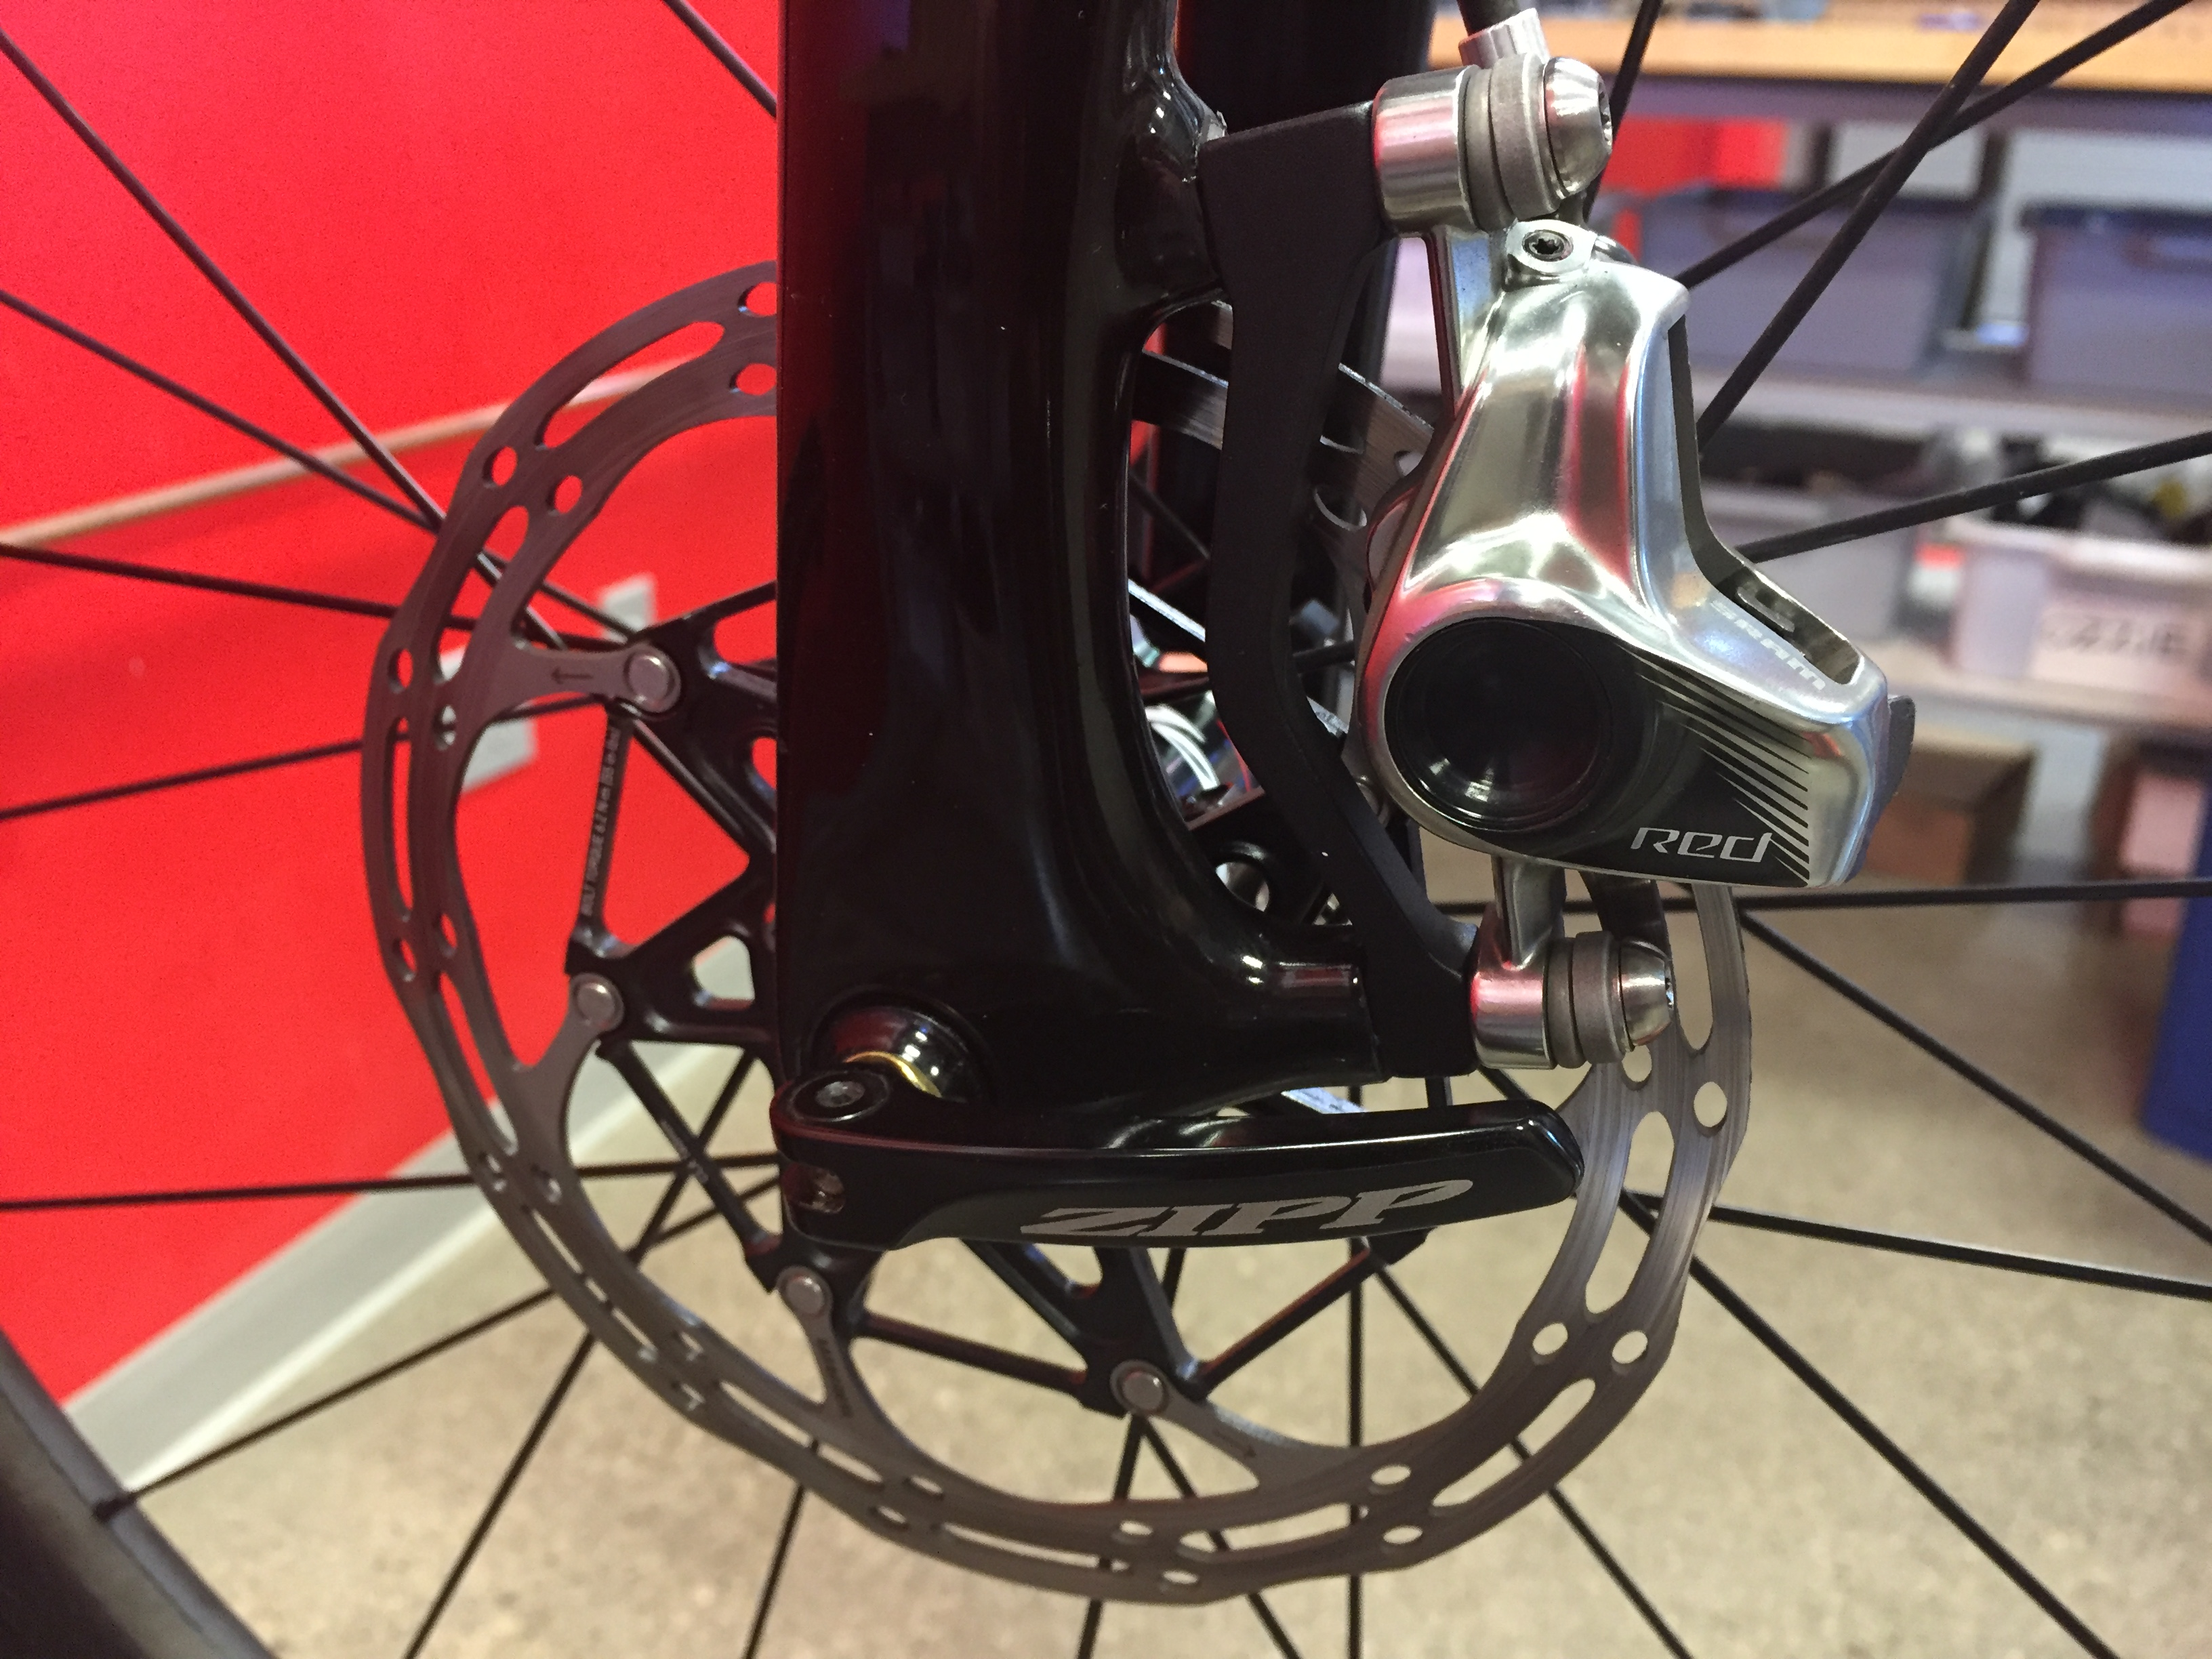 Electronic Gear Shifting System Wikipedia Alfine Di2 Wiring Diagram Sram Red Etap Hrd Caliper And Rotor Installed On Bike